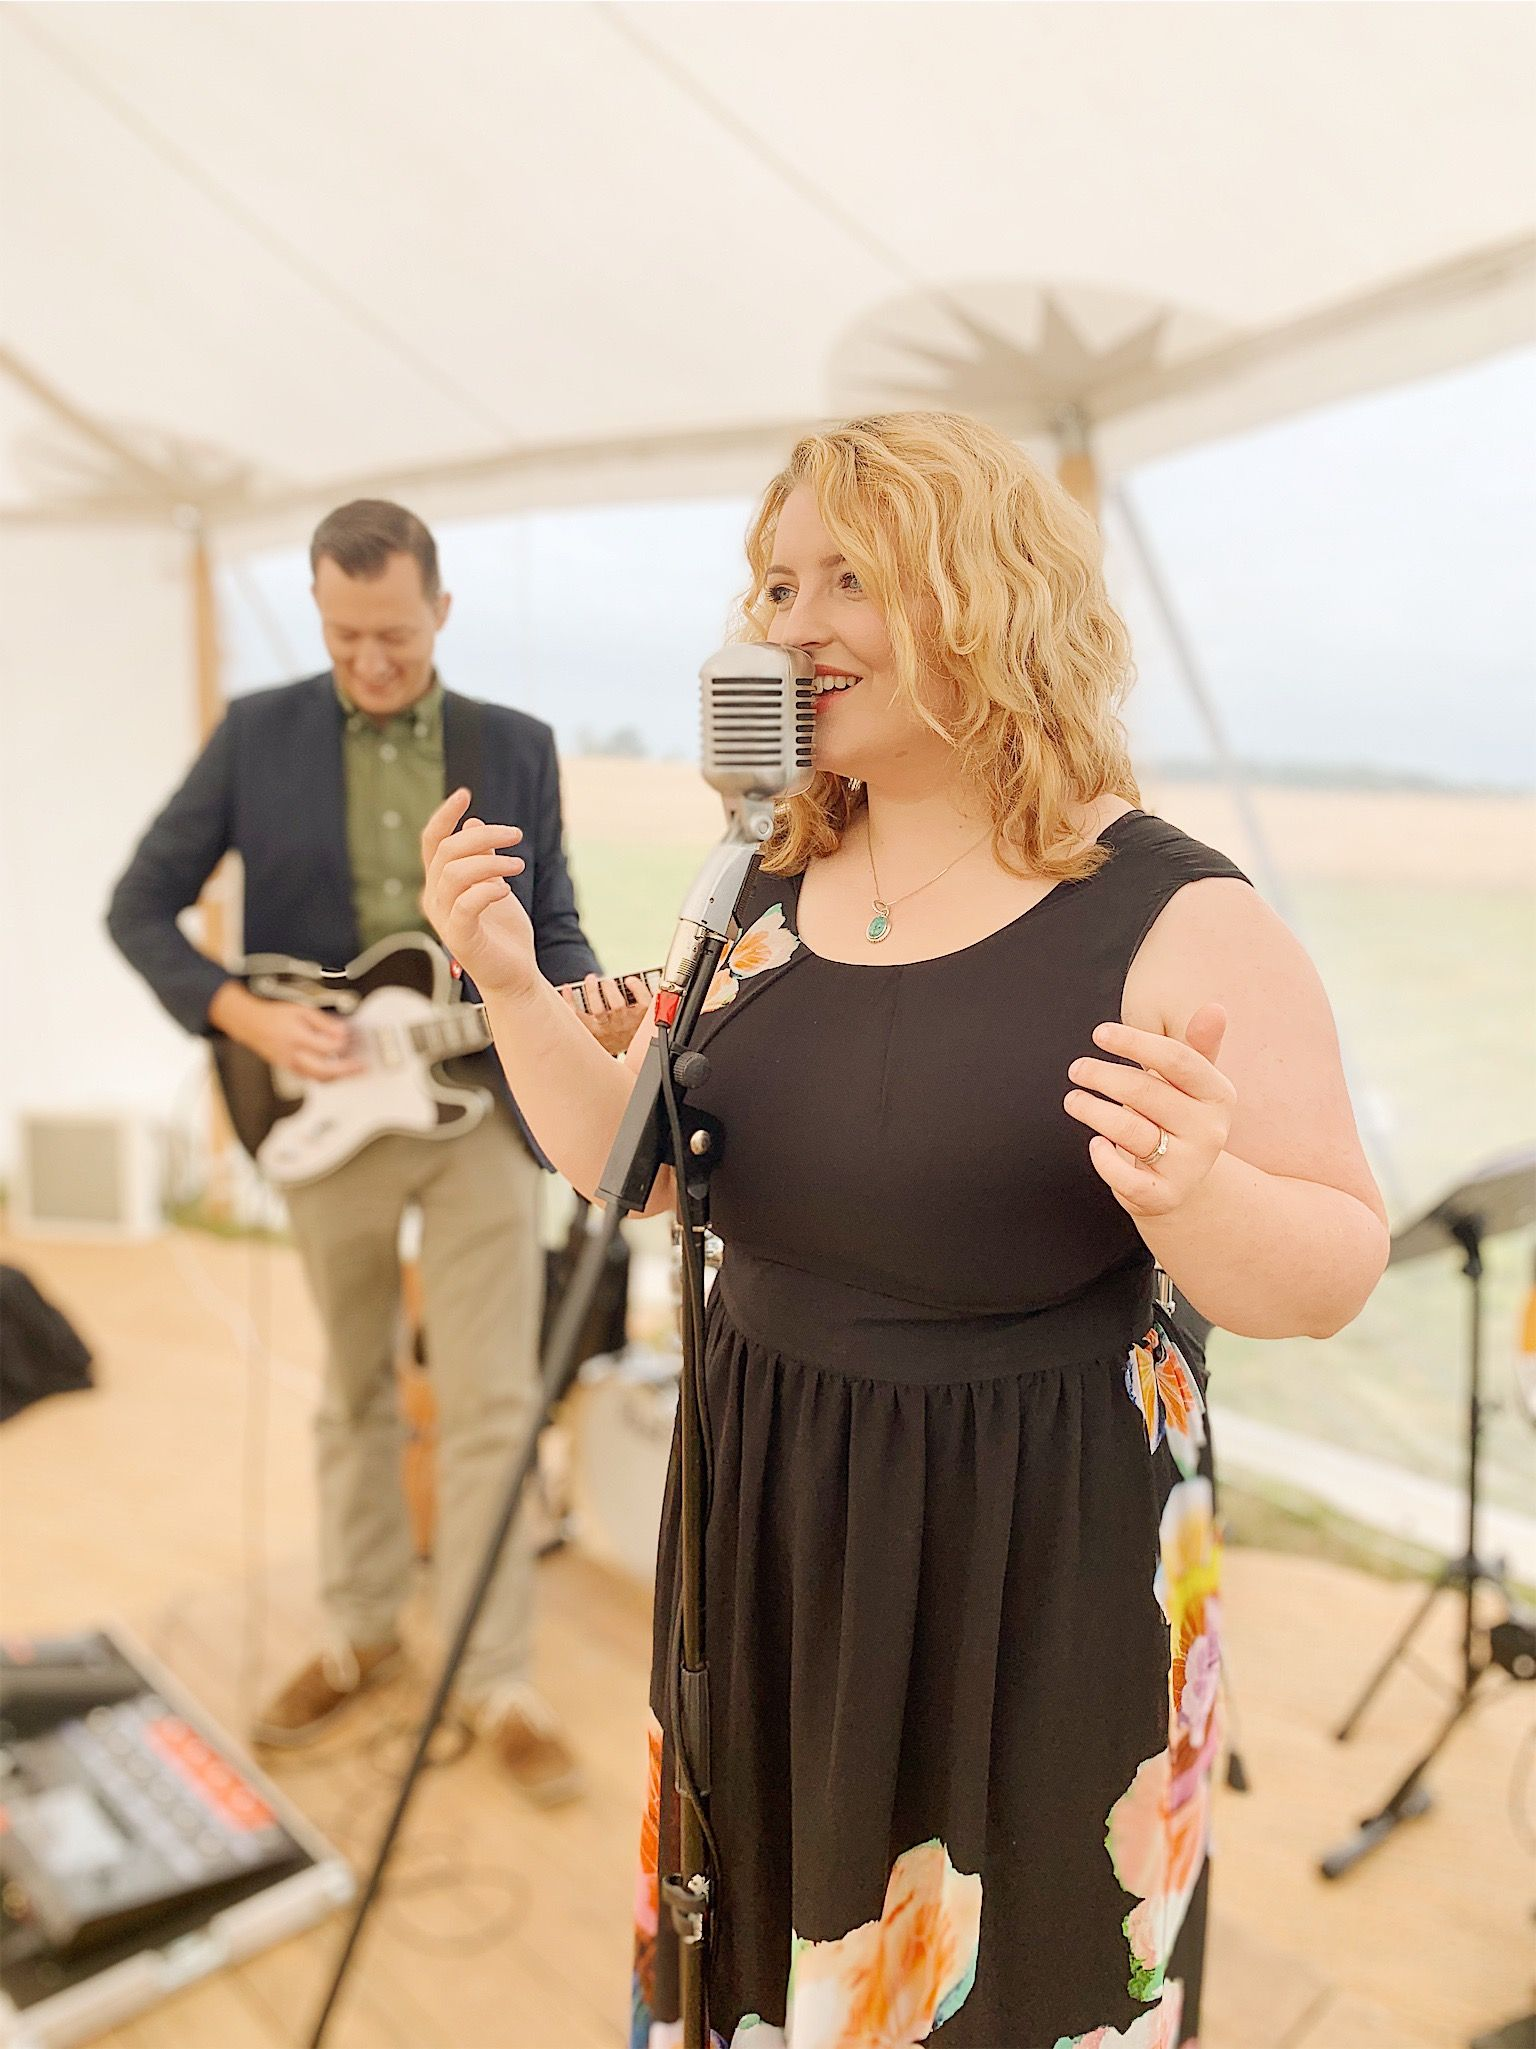 A romantic acoustic duo for your wedding ceremony